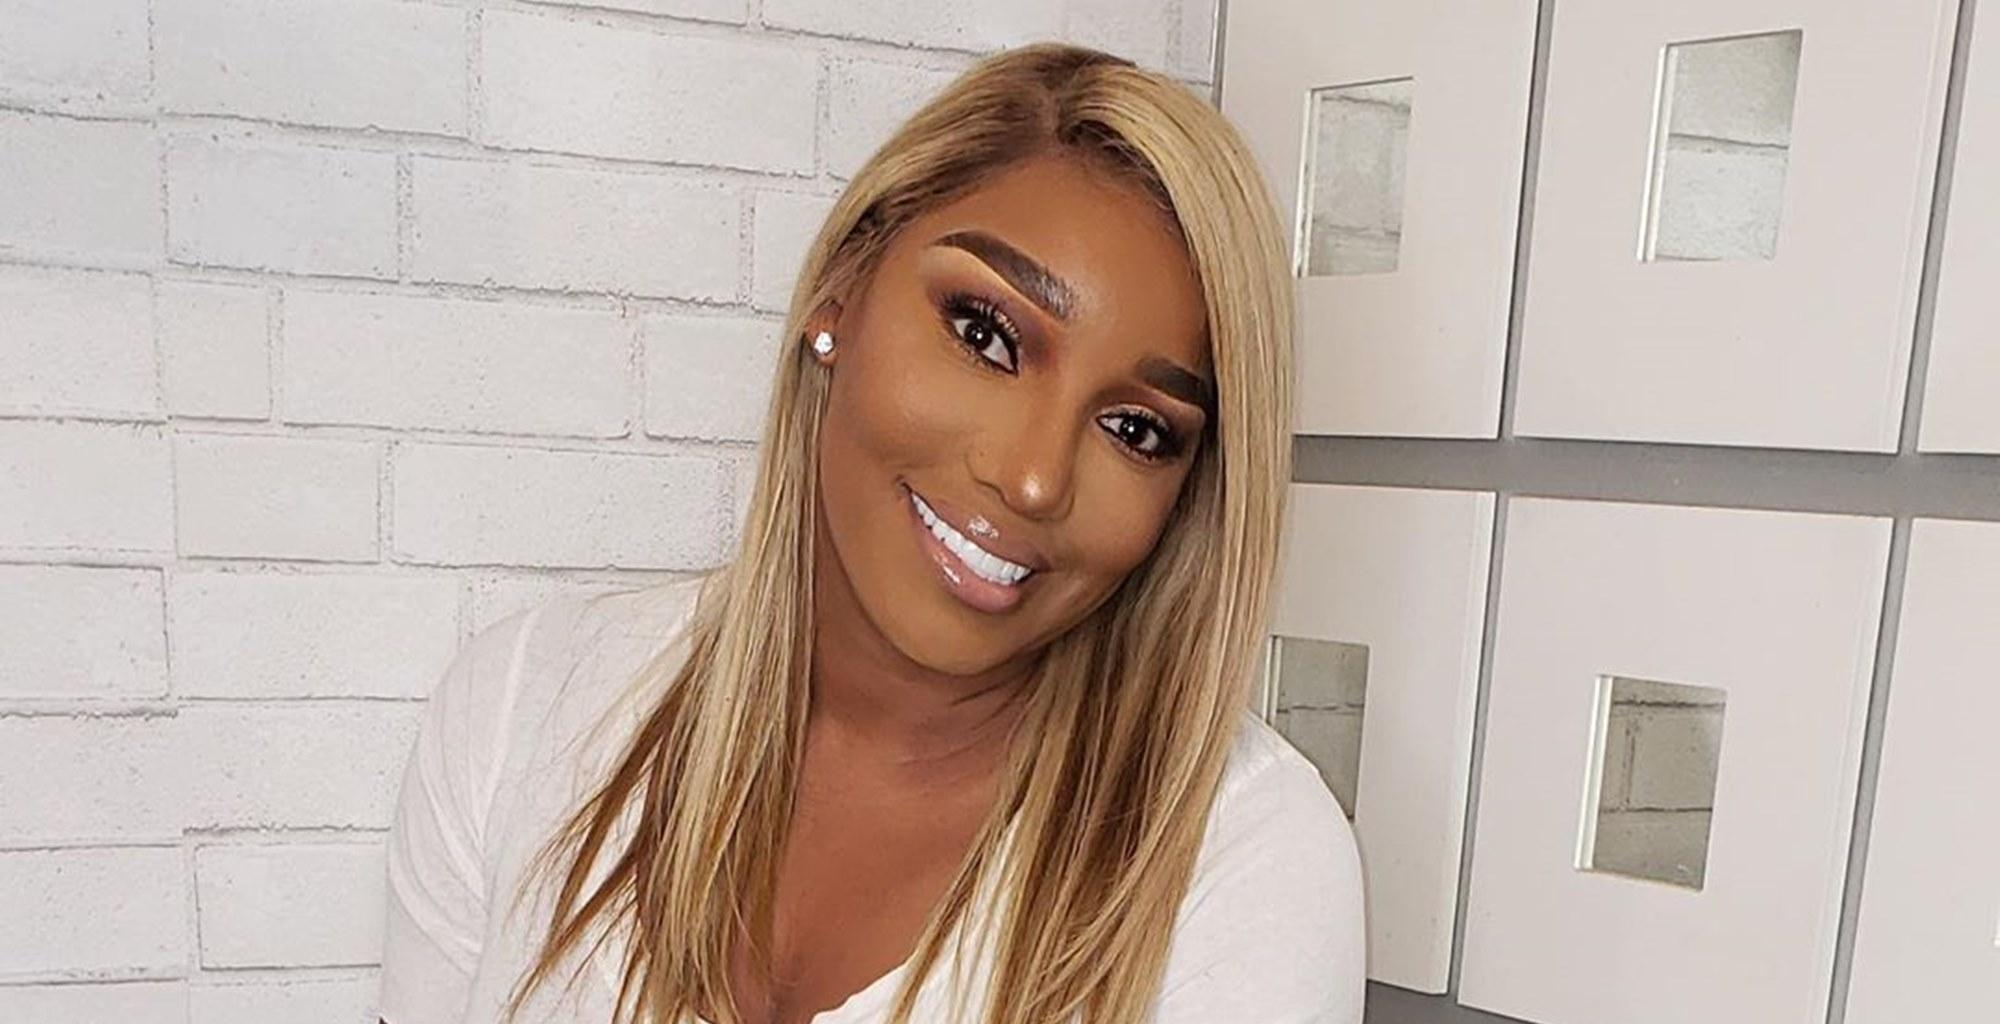 NeNe Leakes Offered Free Advice To People - Check Out Her Video